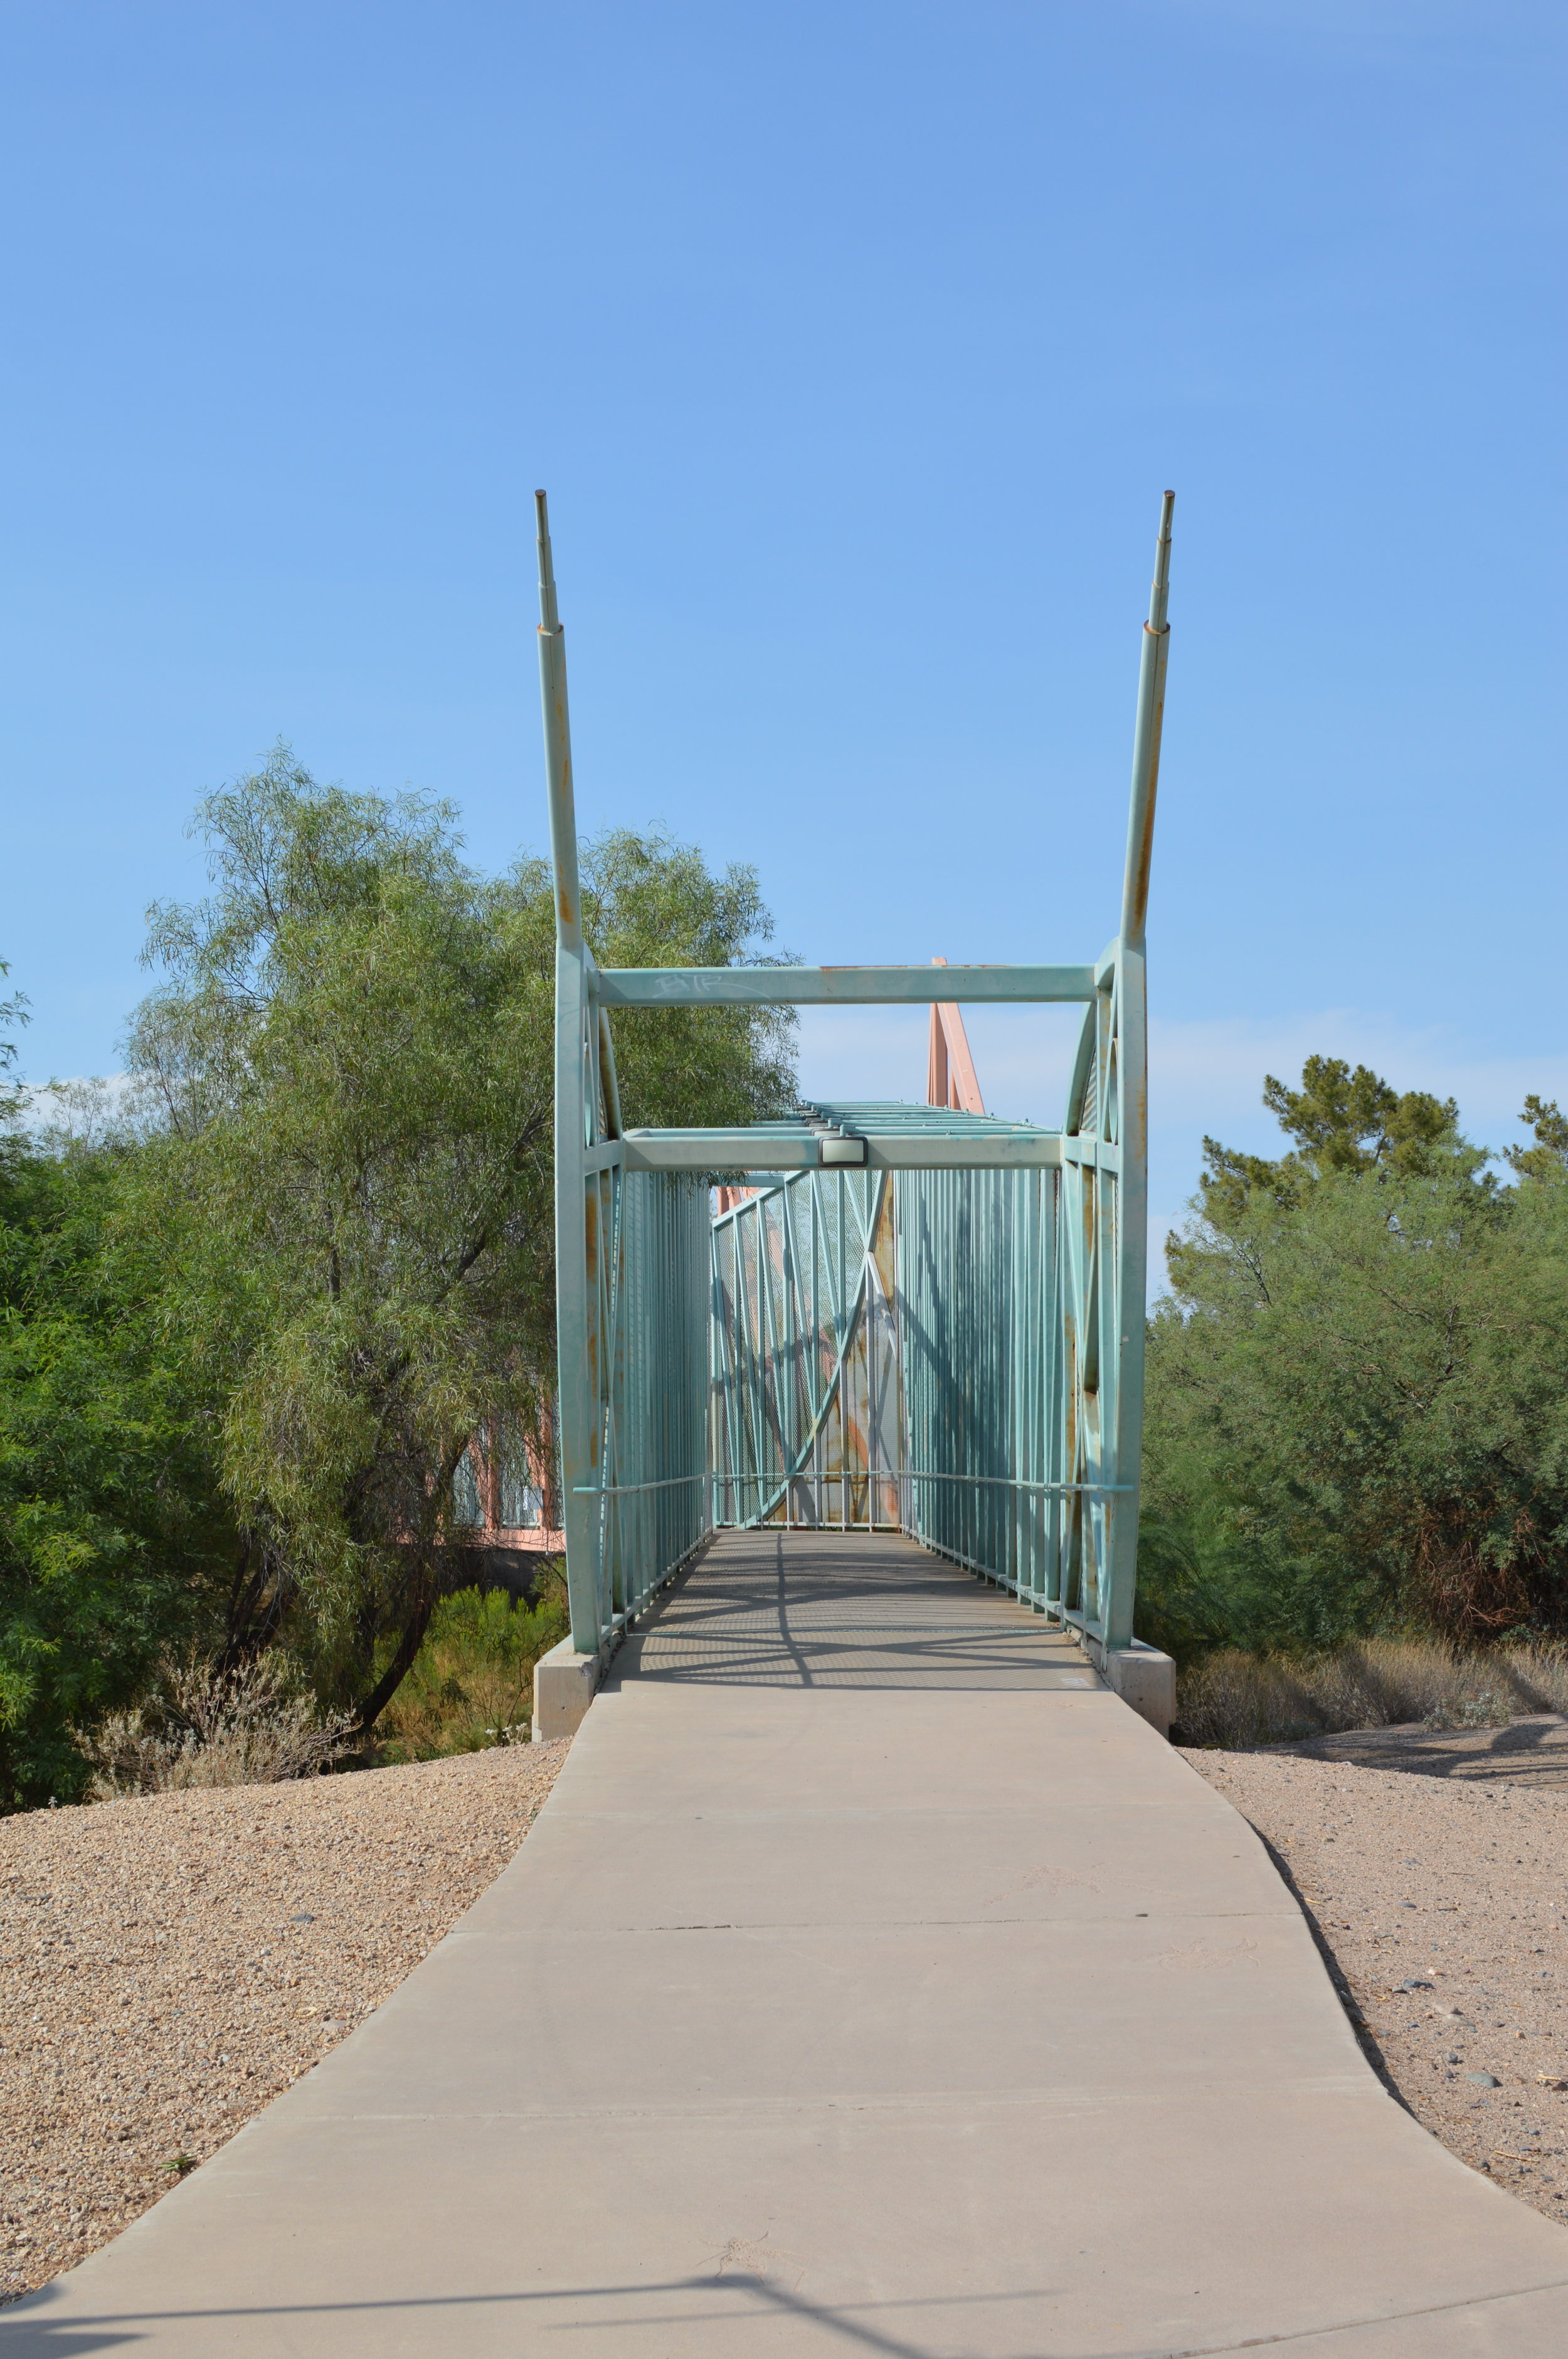 Grasshopper Bridge